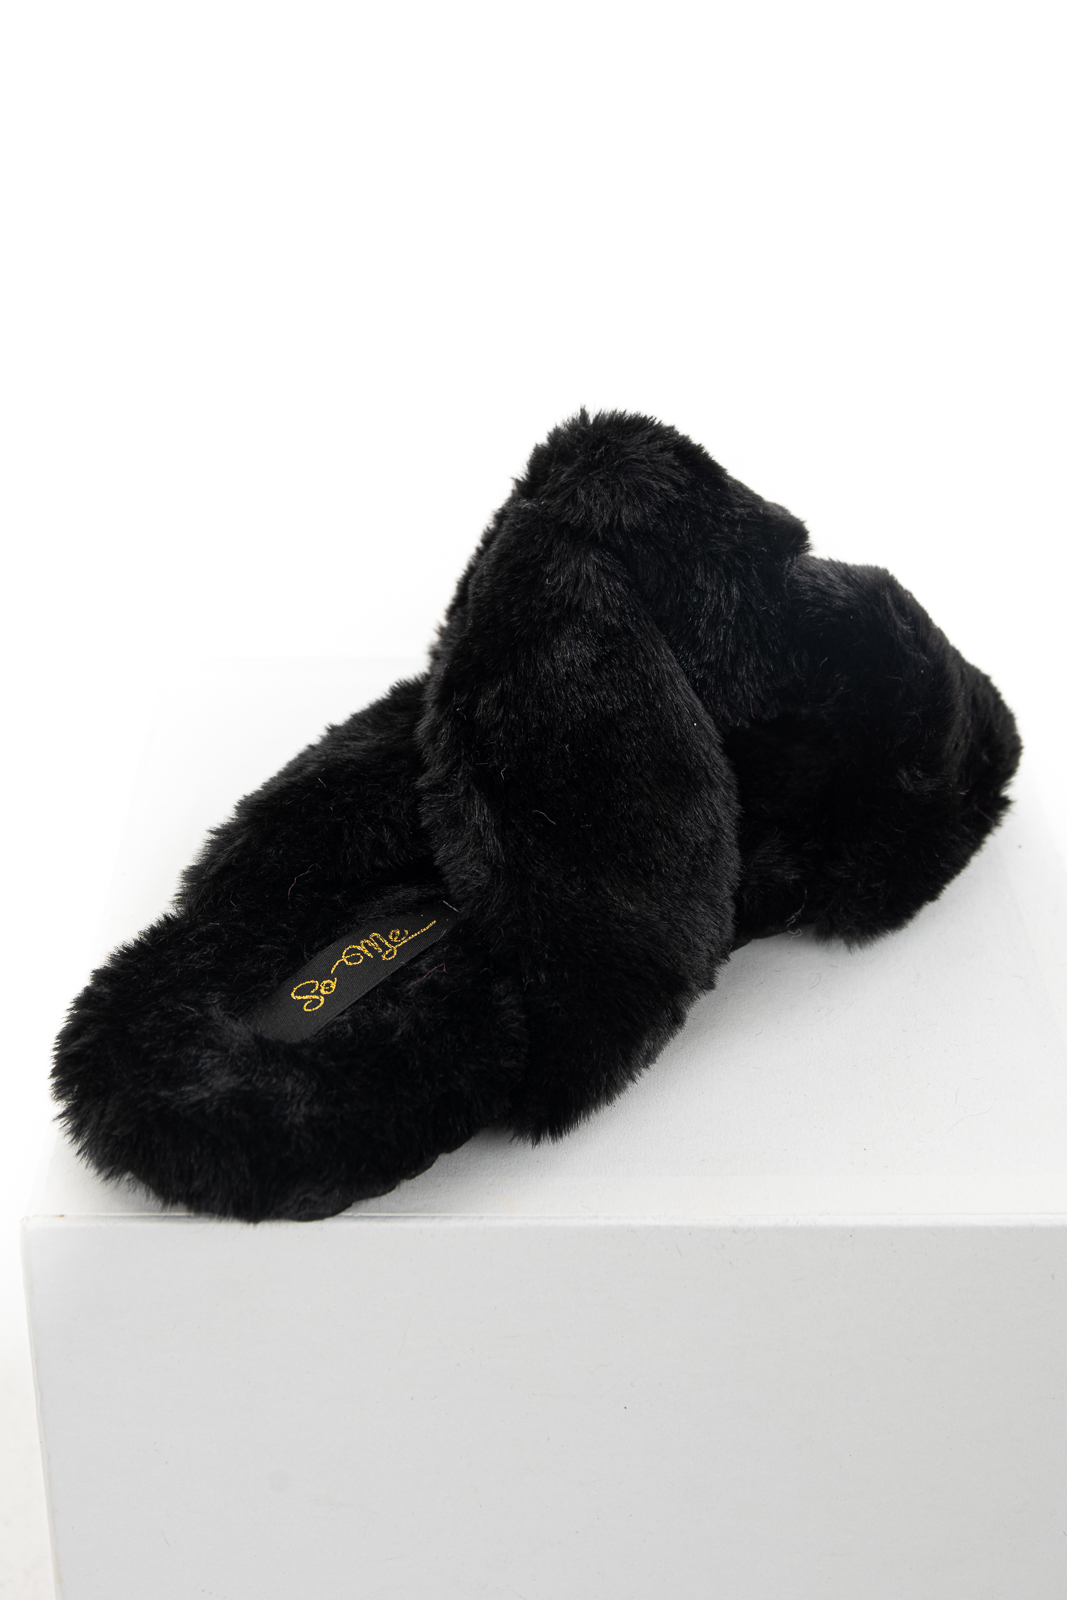 Black Fuzzy Soft Sandal Slippers with Criss Cross Details